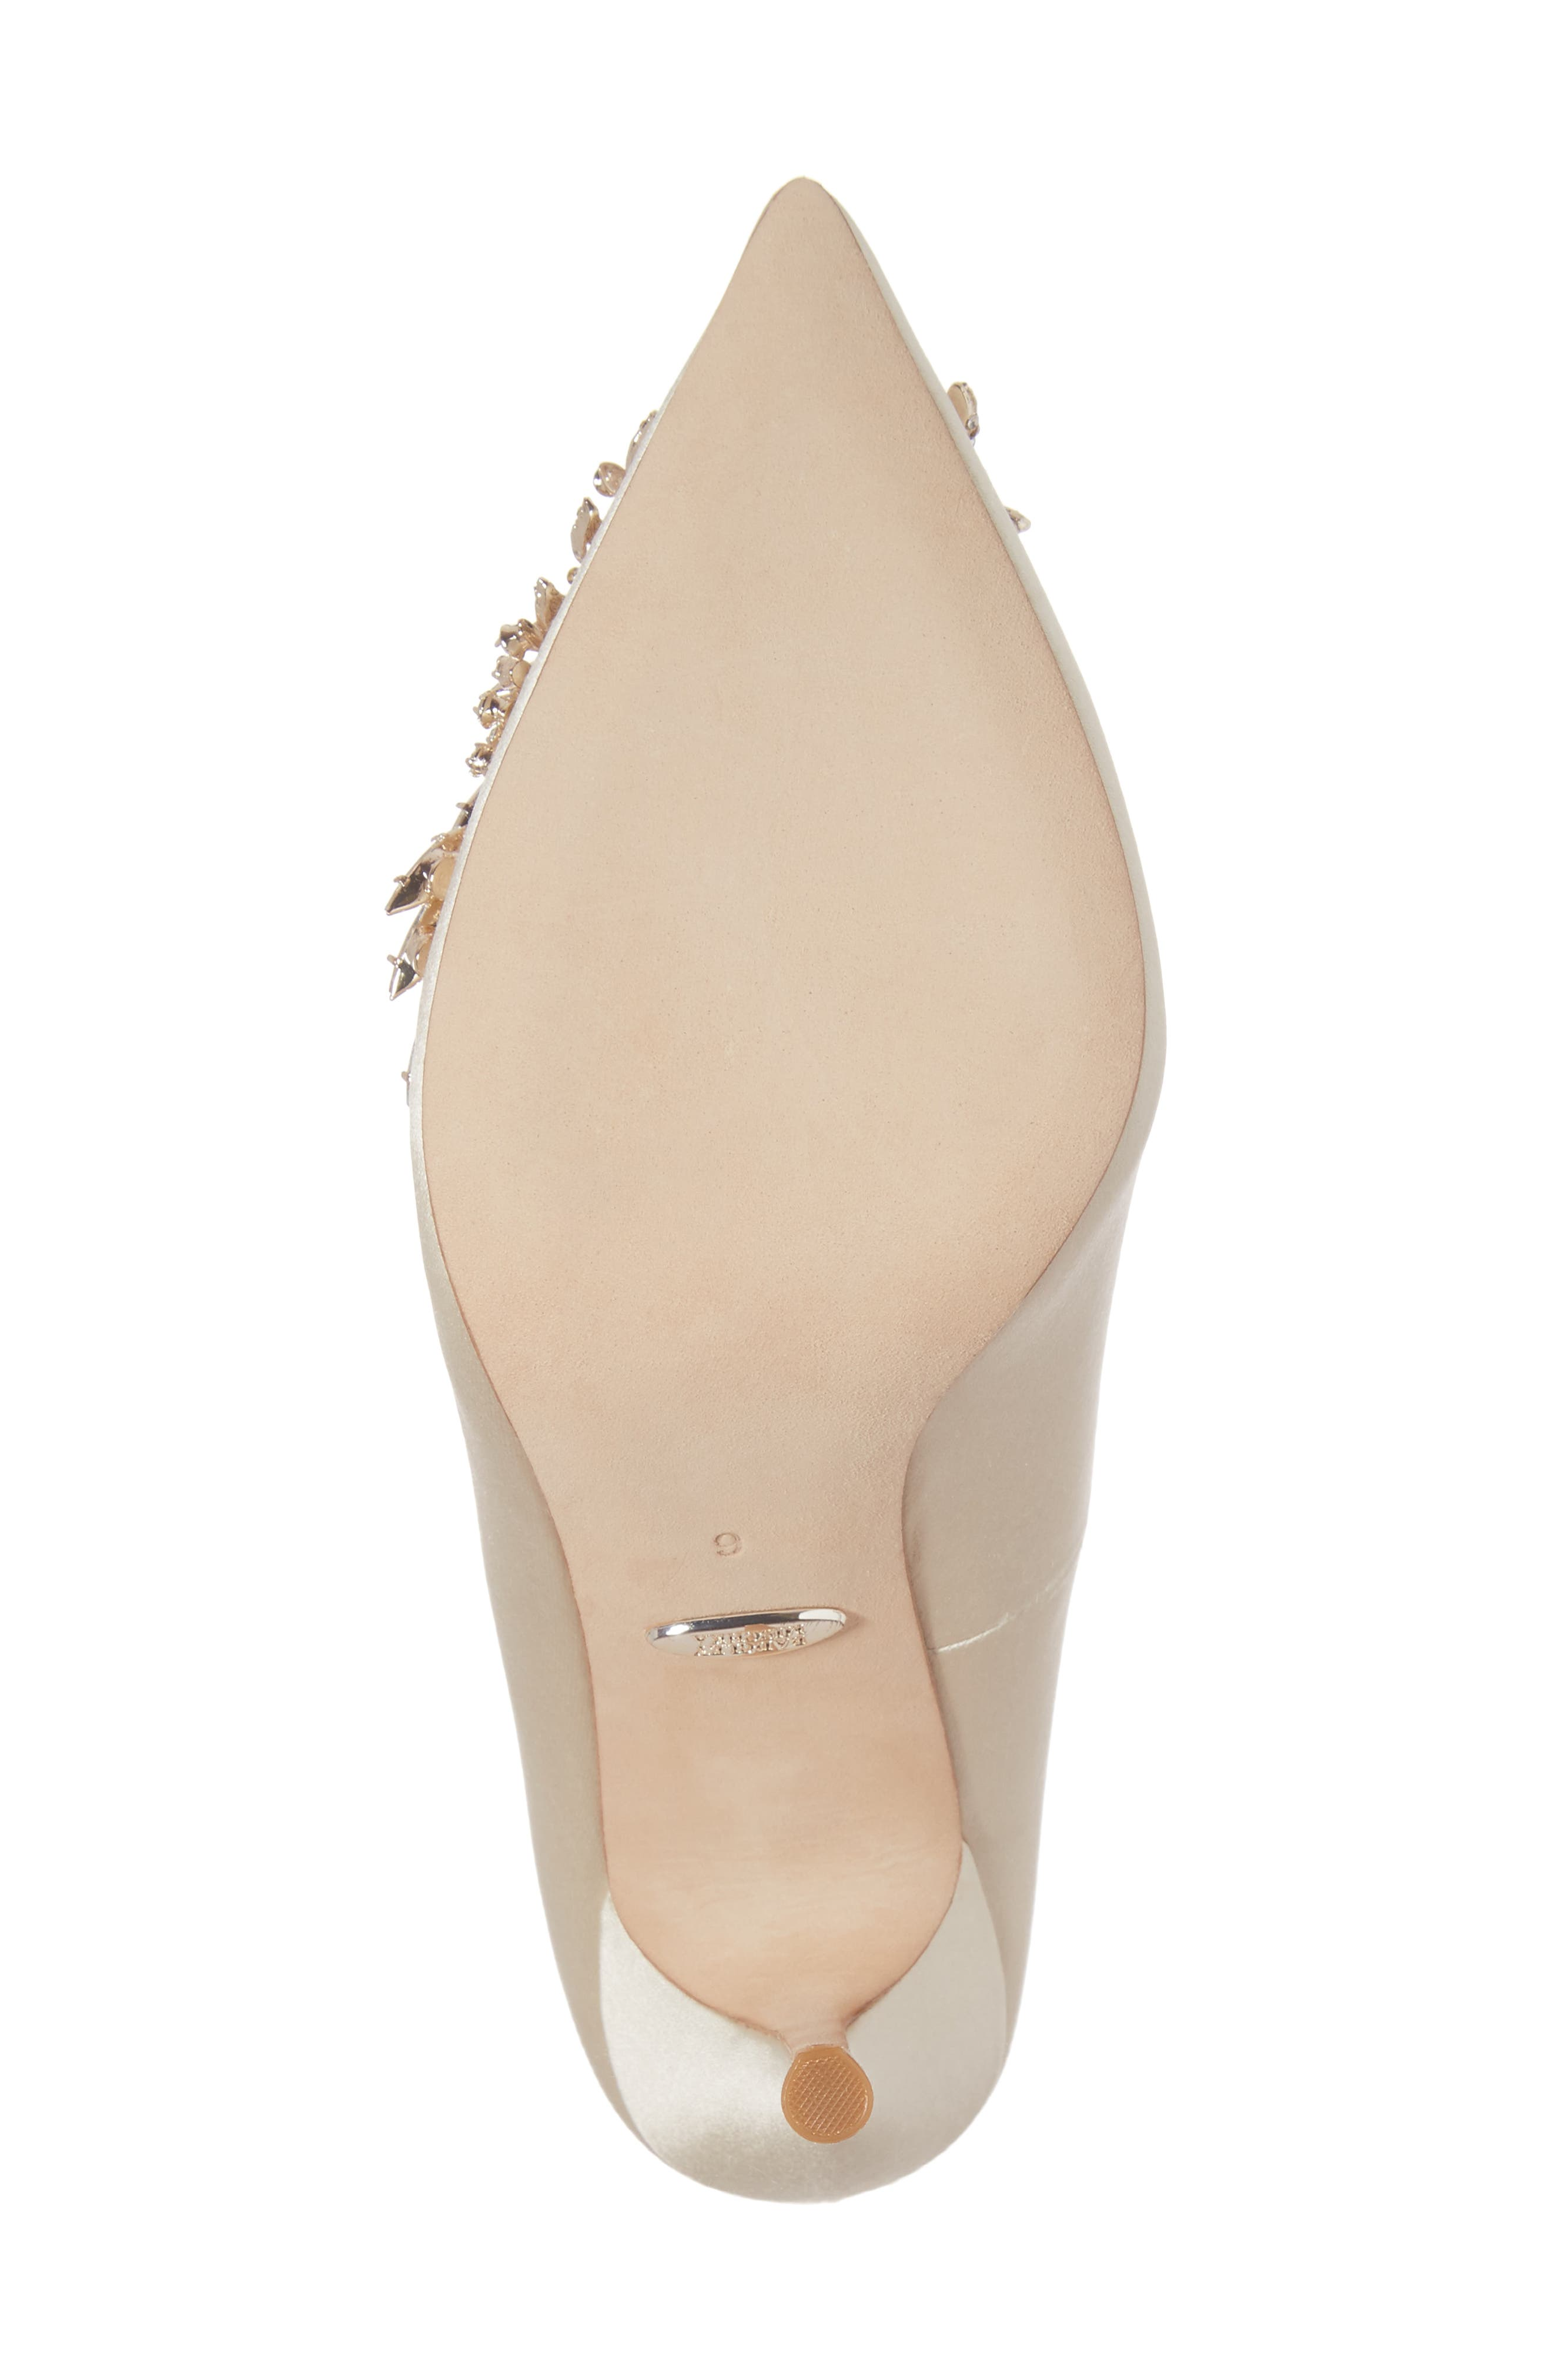 Marcela Pointy Toe Pump,                             Alternate thumbnail 6, color,                             Ivory Satin